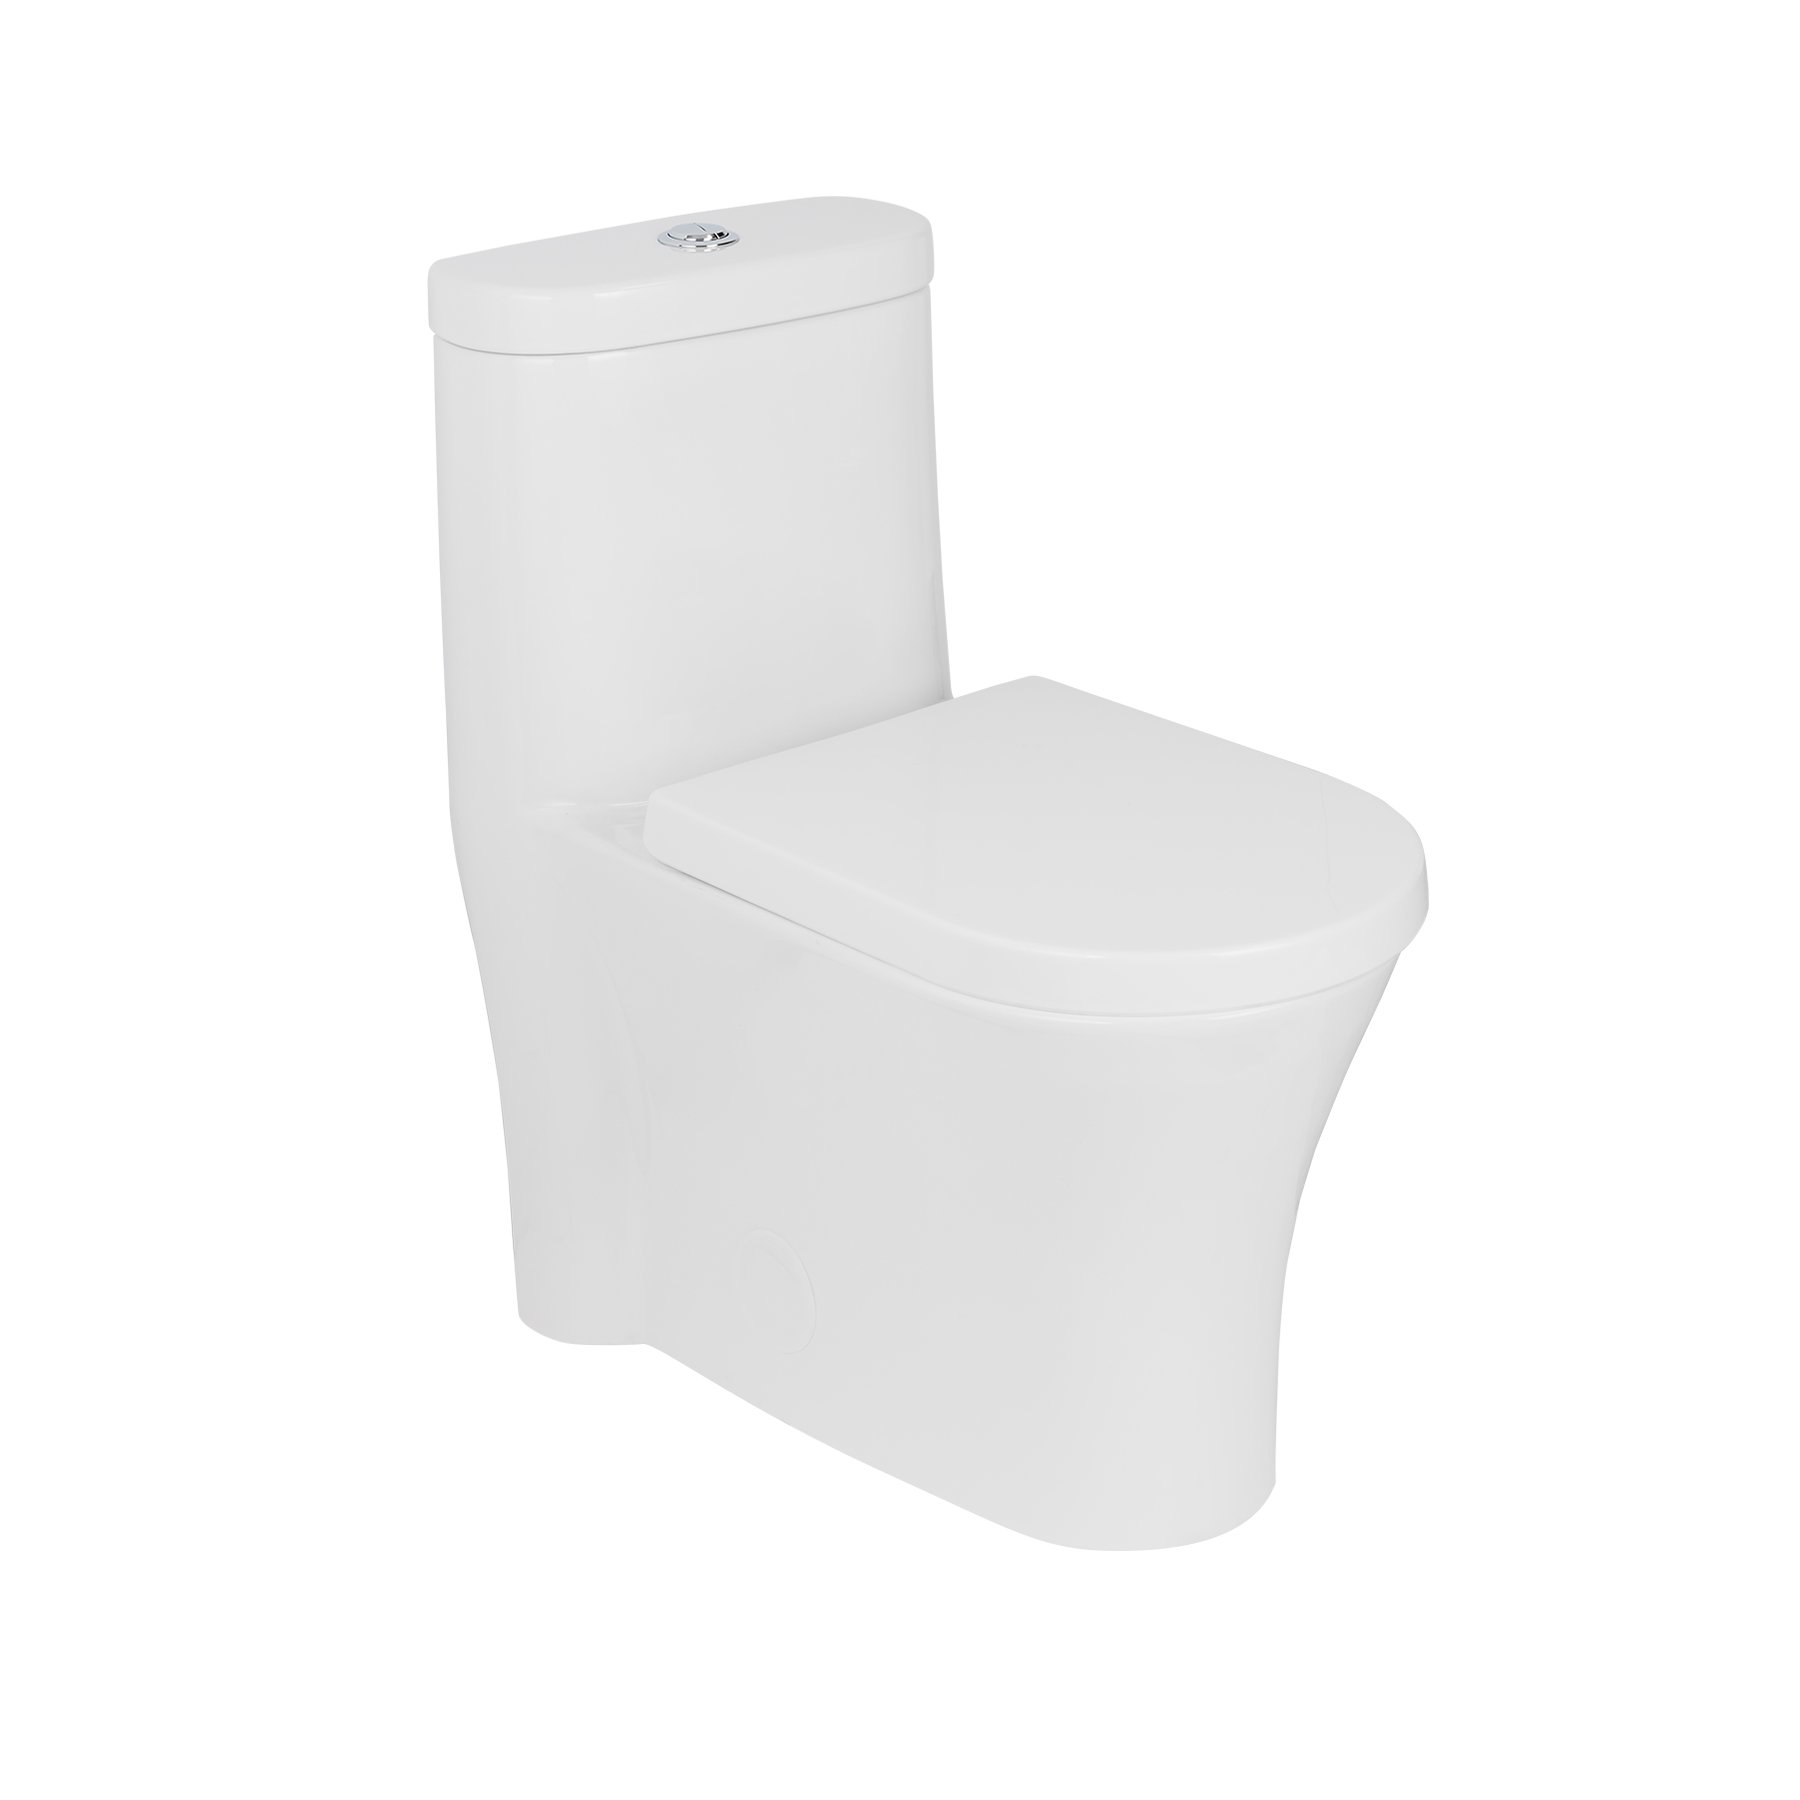 MAYKKE Morar One-Piece Toilet with Elongated Oval Soft-Closing Seat Modern Luxury Style Dual Flush Siphonic Jets, Extra-Wide Concealed Trapway 1.6 GPF and 12'' Rough-In, White, JXA1020101 by Maykke